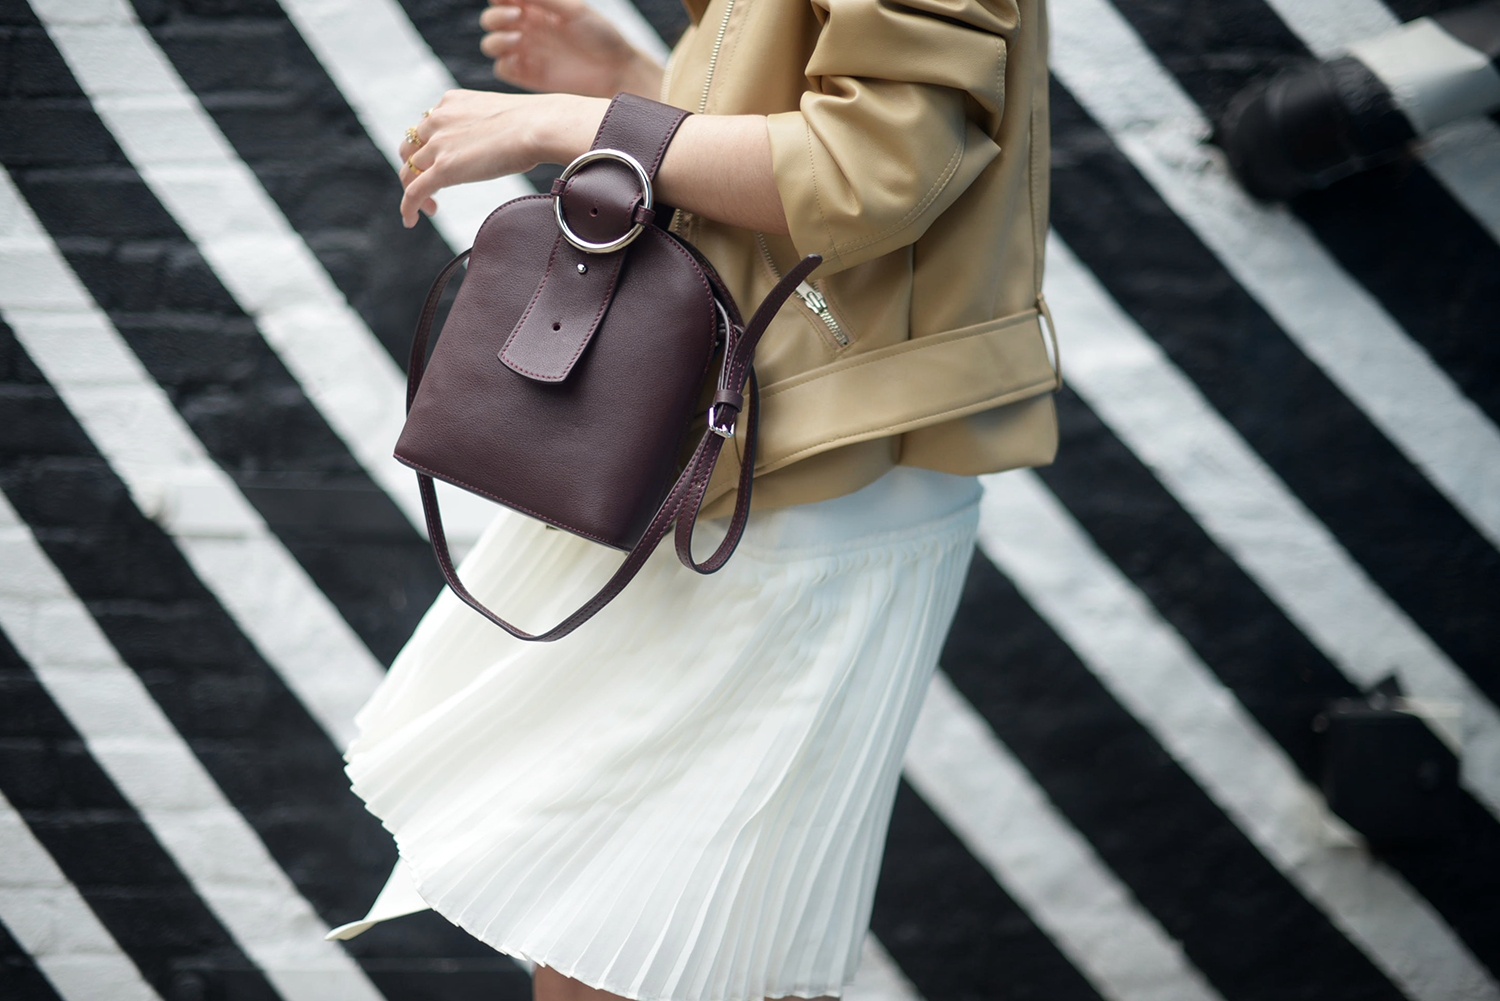 Pleated Dress Derek Lam Beige Leather Jacket | FOREVERVANNY.com